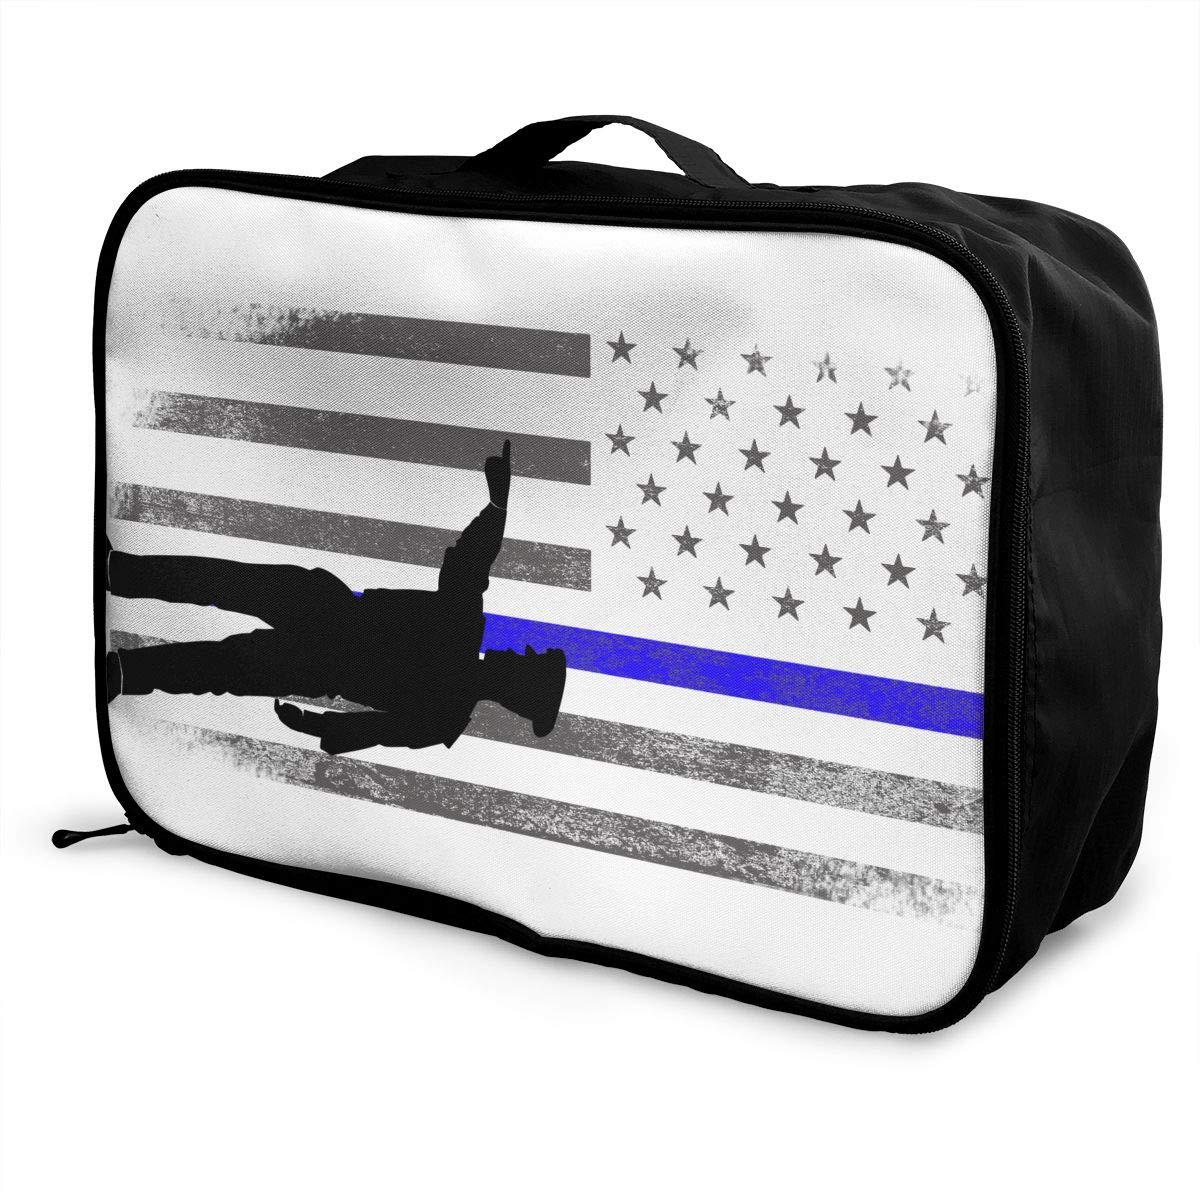 YueLJB Police Lives Matter Lightweight Large Capacity Portable Luggage Bag Travel Duffel Bag Storage Carry Luggage Duffle Tote Bag